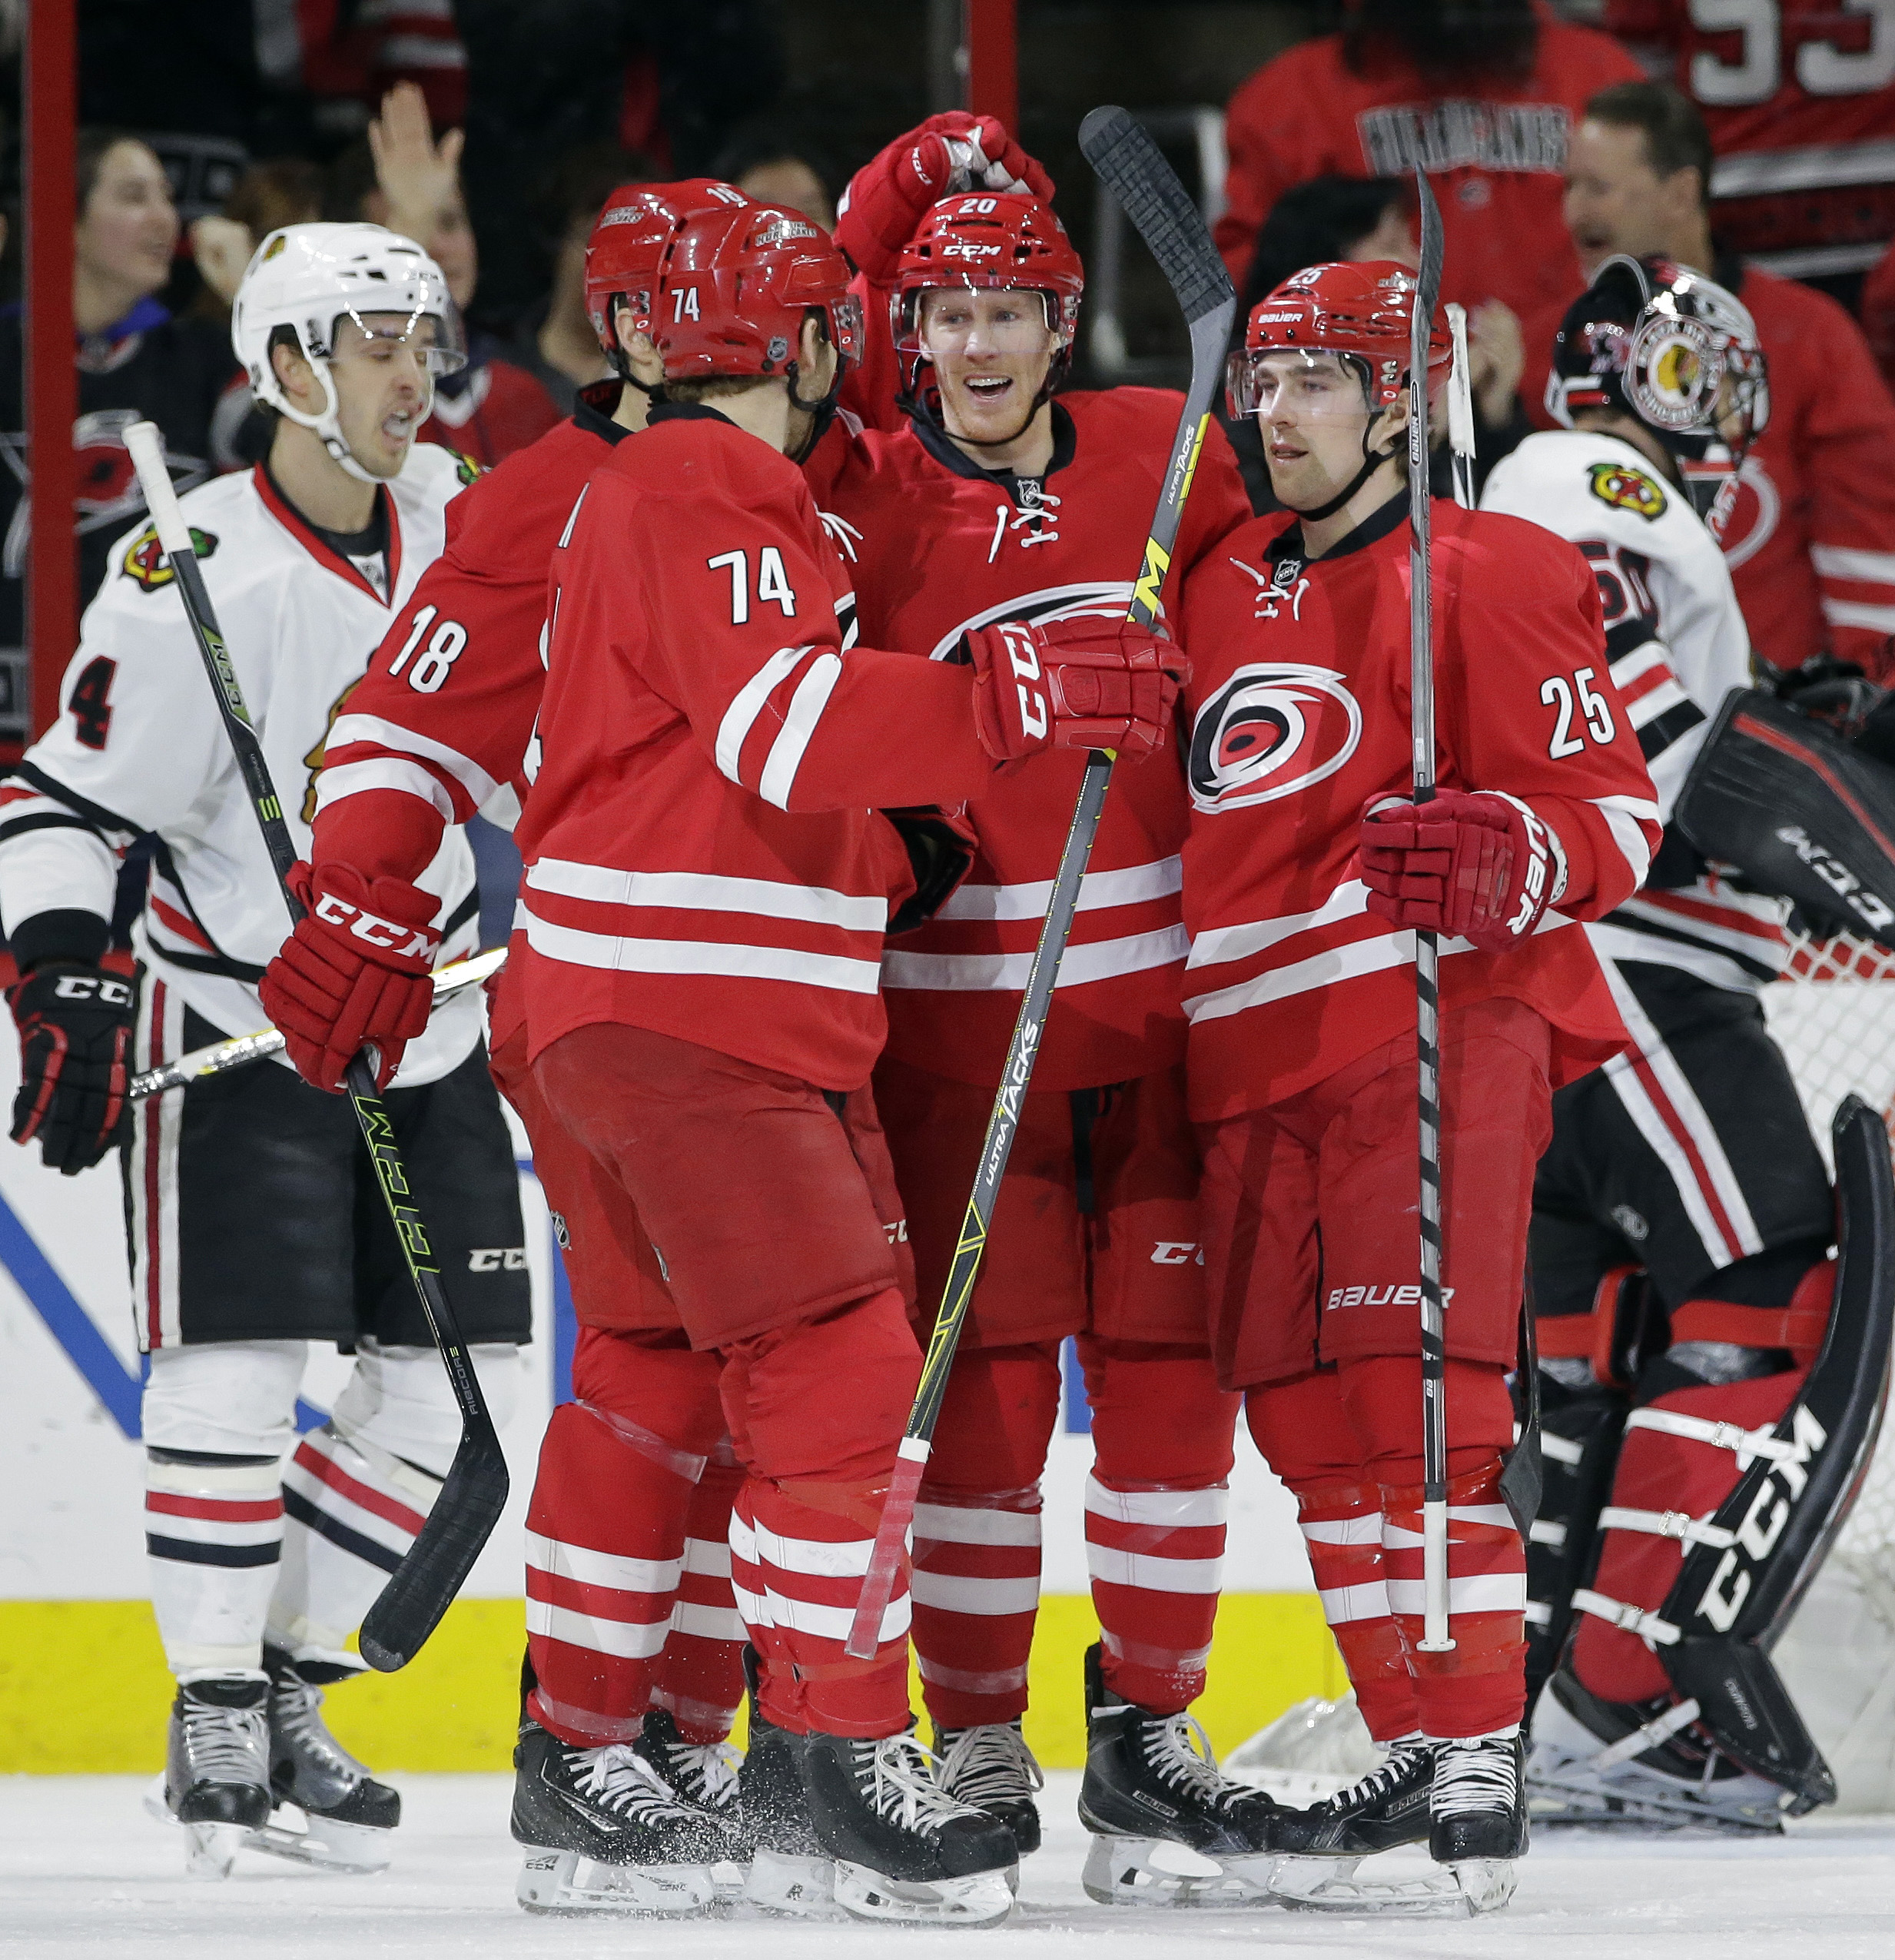 Carolina Hurricanes' Riley Nash (20) is congratulated by Hurricanes' Jay McClement (18), Jaccob Slavin (74) and Chris Terry (25) following Nash's goal against Chicago Blackhawks goalie Corey Crawford, right, during the first period of an NHL hockey game i